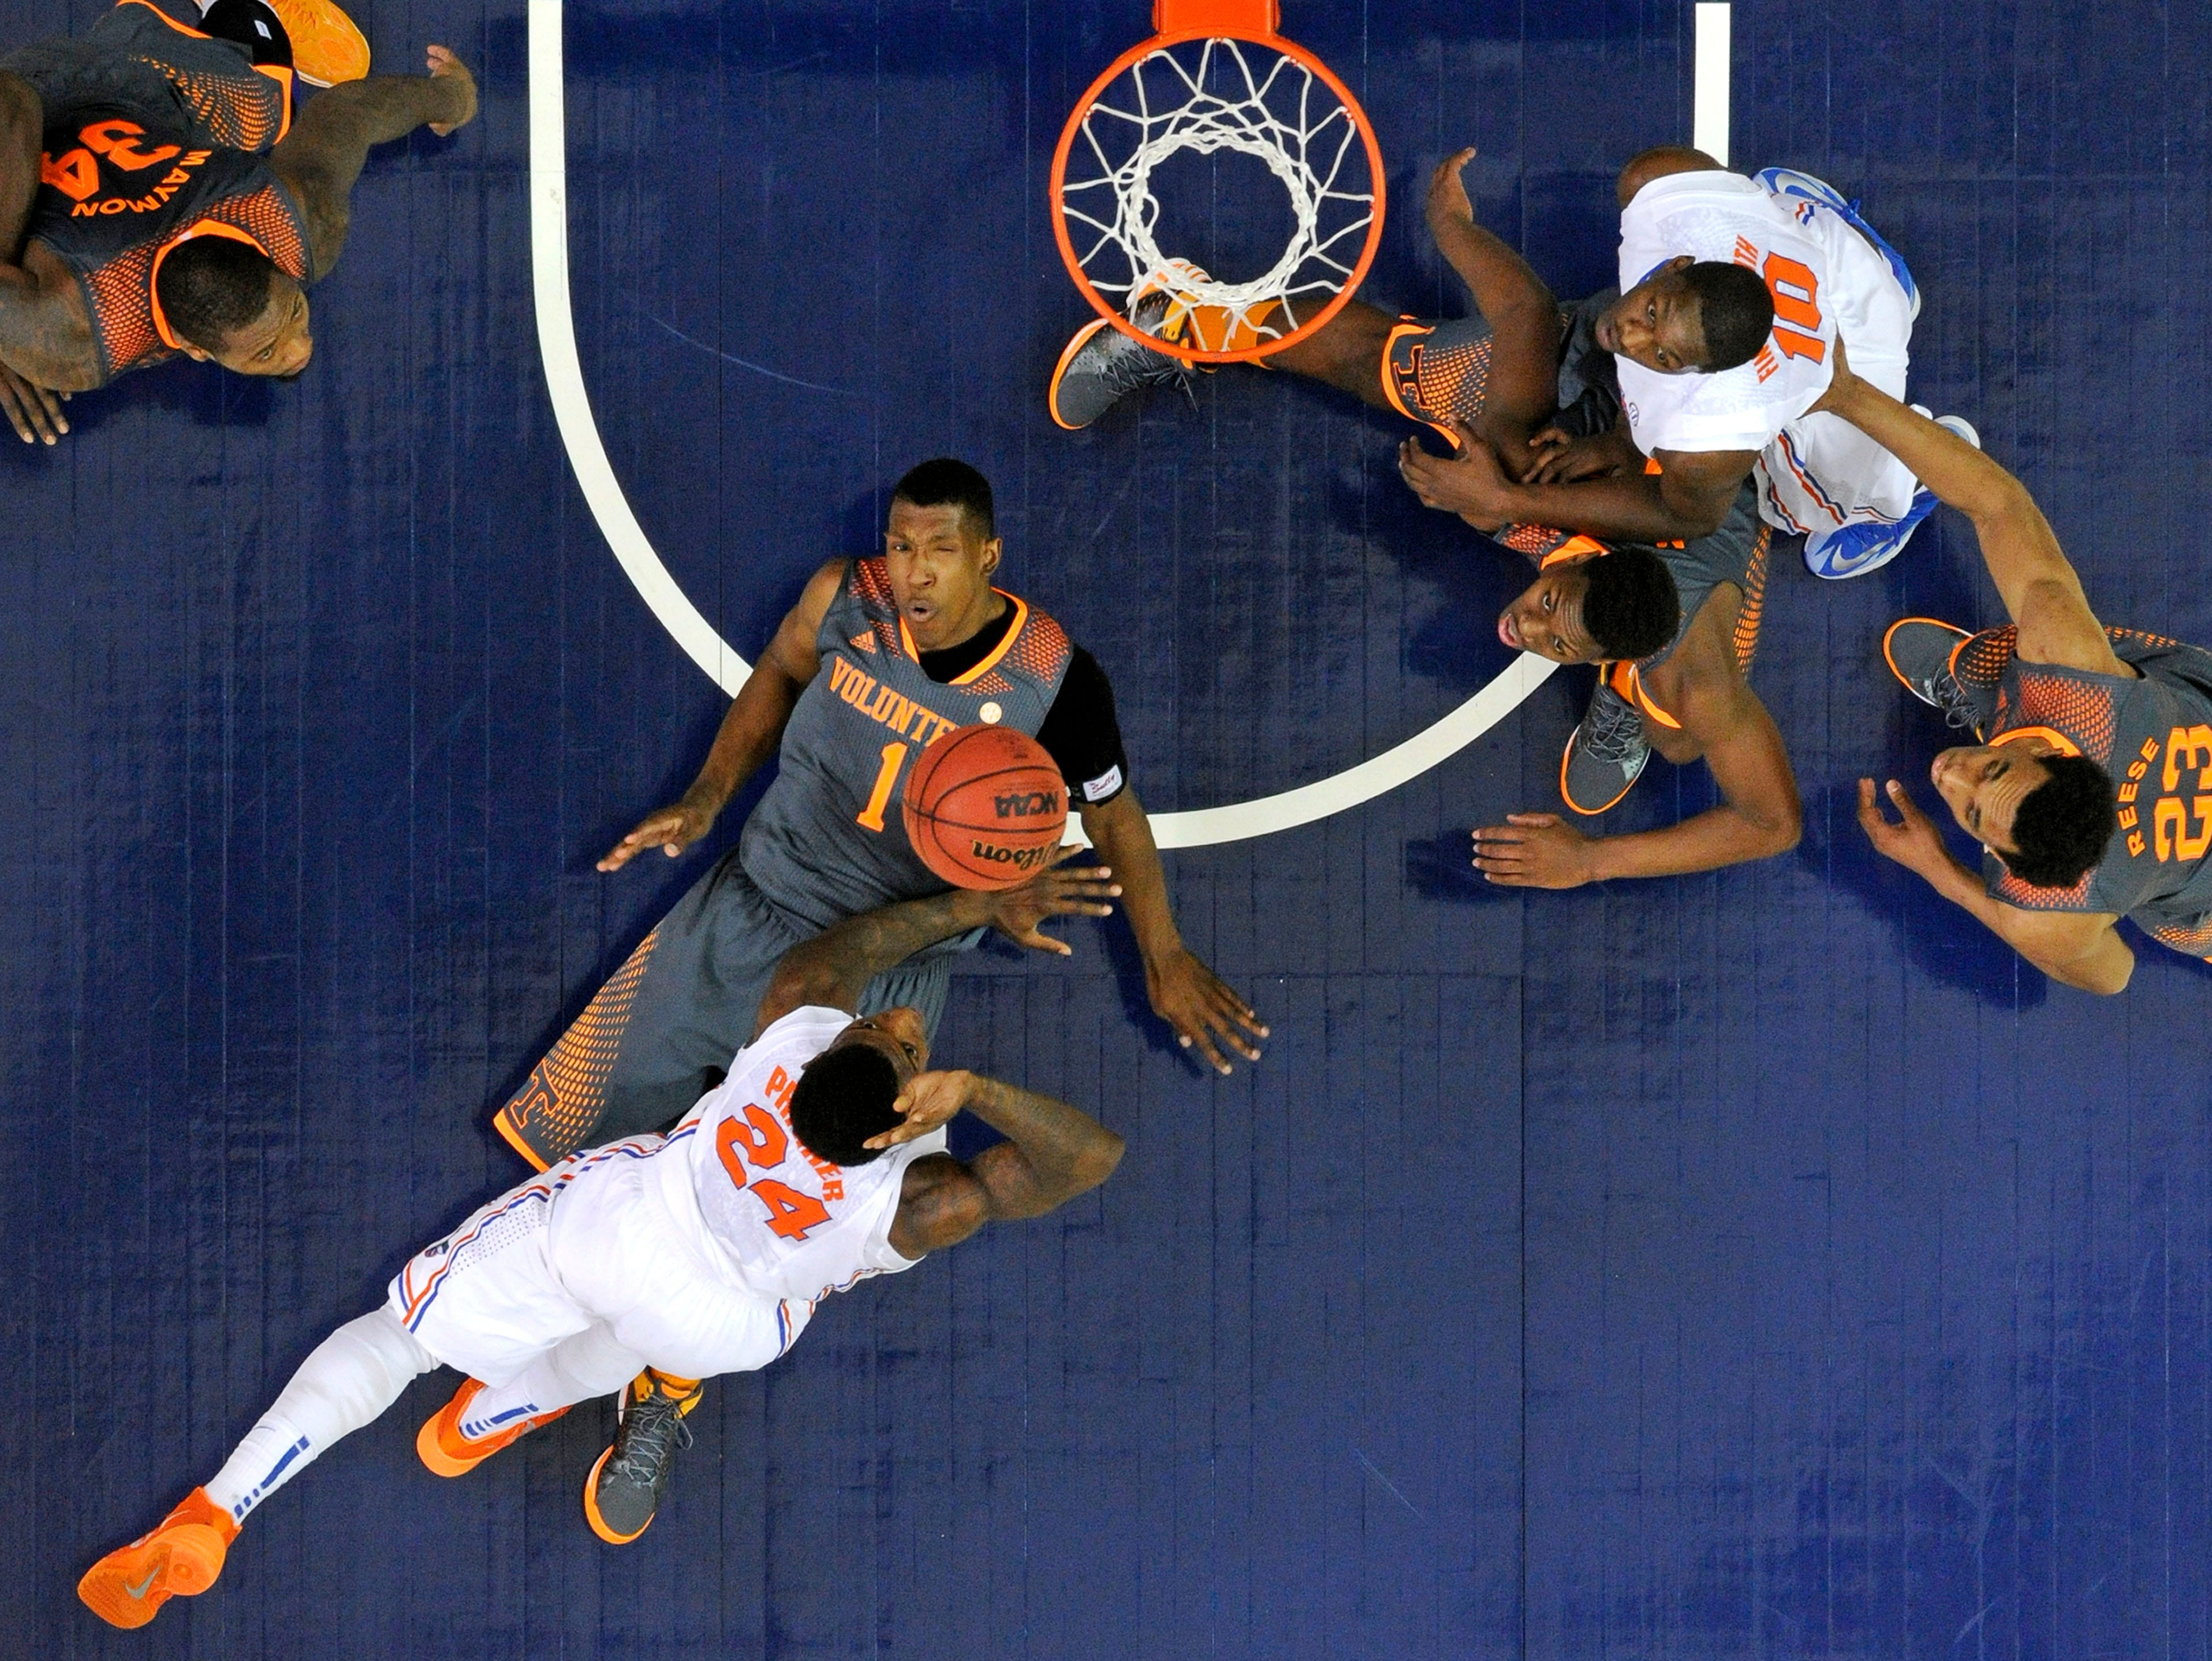 Tennessee guard Josh Richardson (1) draws a charging foul from Florida forward Casey Prather (24) during the first half of an SEC tournament semifinal game at the Georgia Dome in Atlanta on Saturday, March 15, 2014. Tennessee lost 56-49.